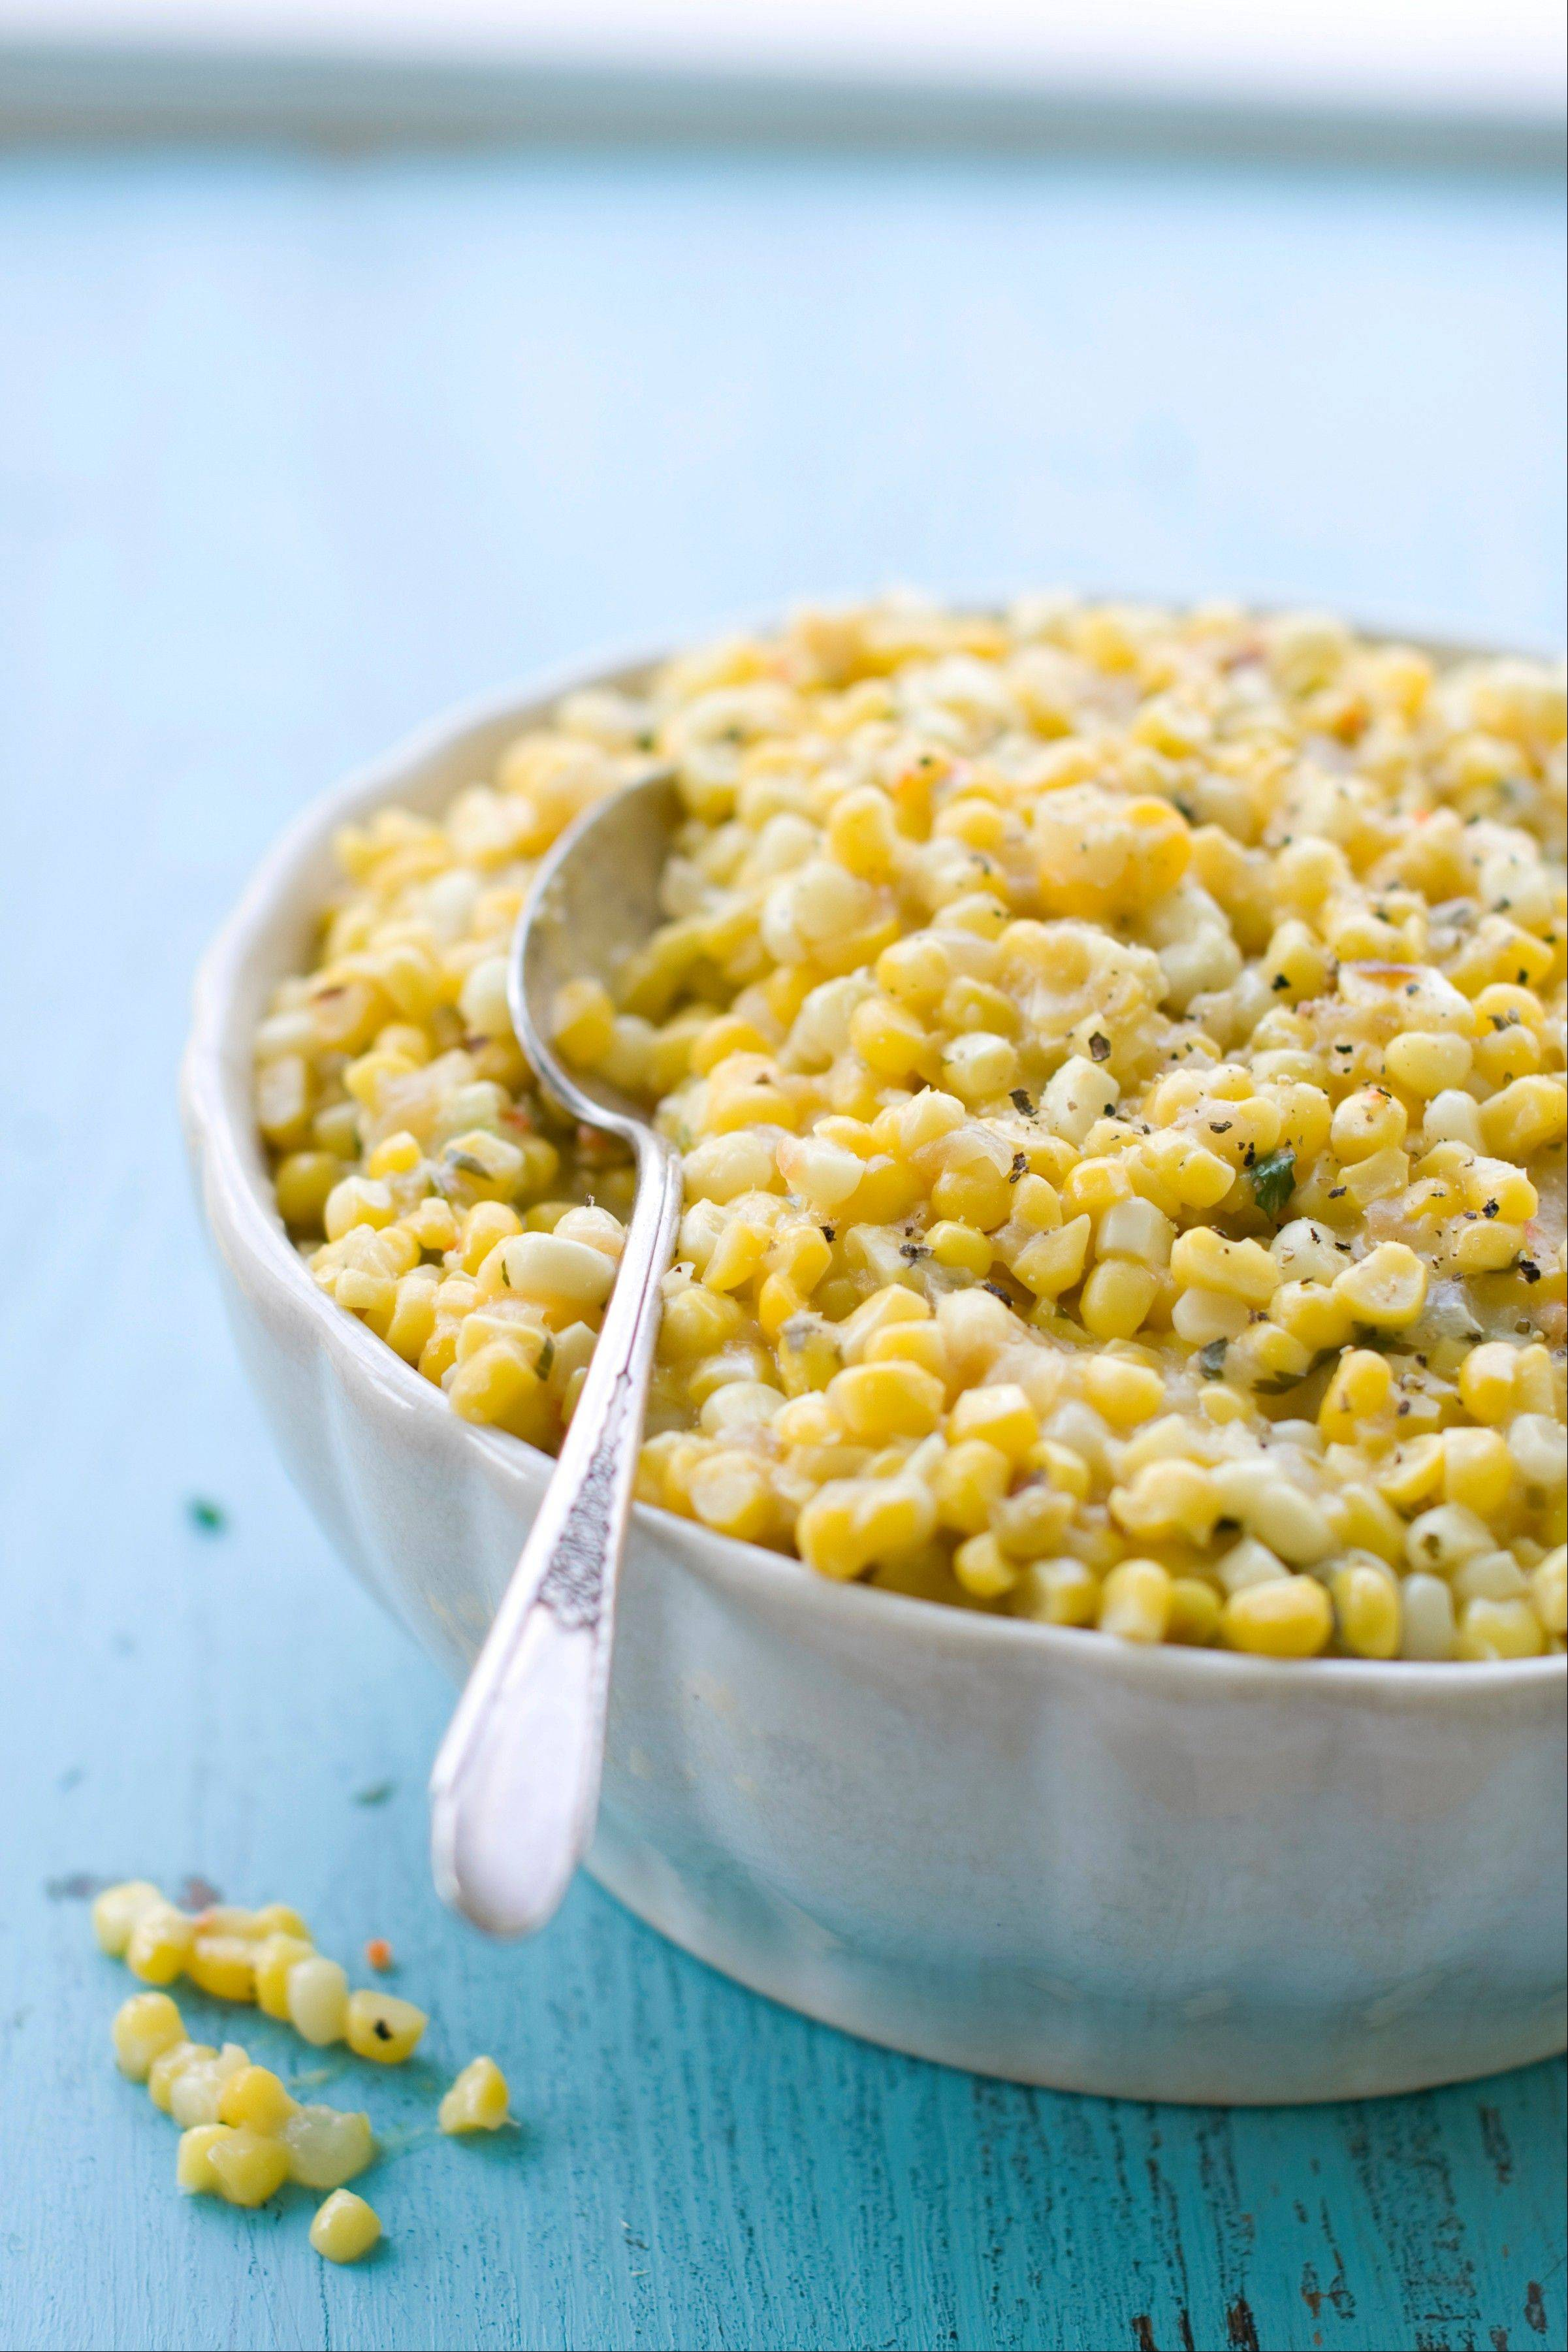 Sara Moulton uses pureed corn to achieve a silky richness without any additional fat in this spicy creamed corn side dish.